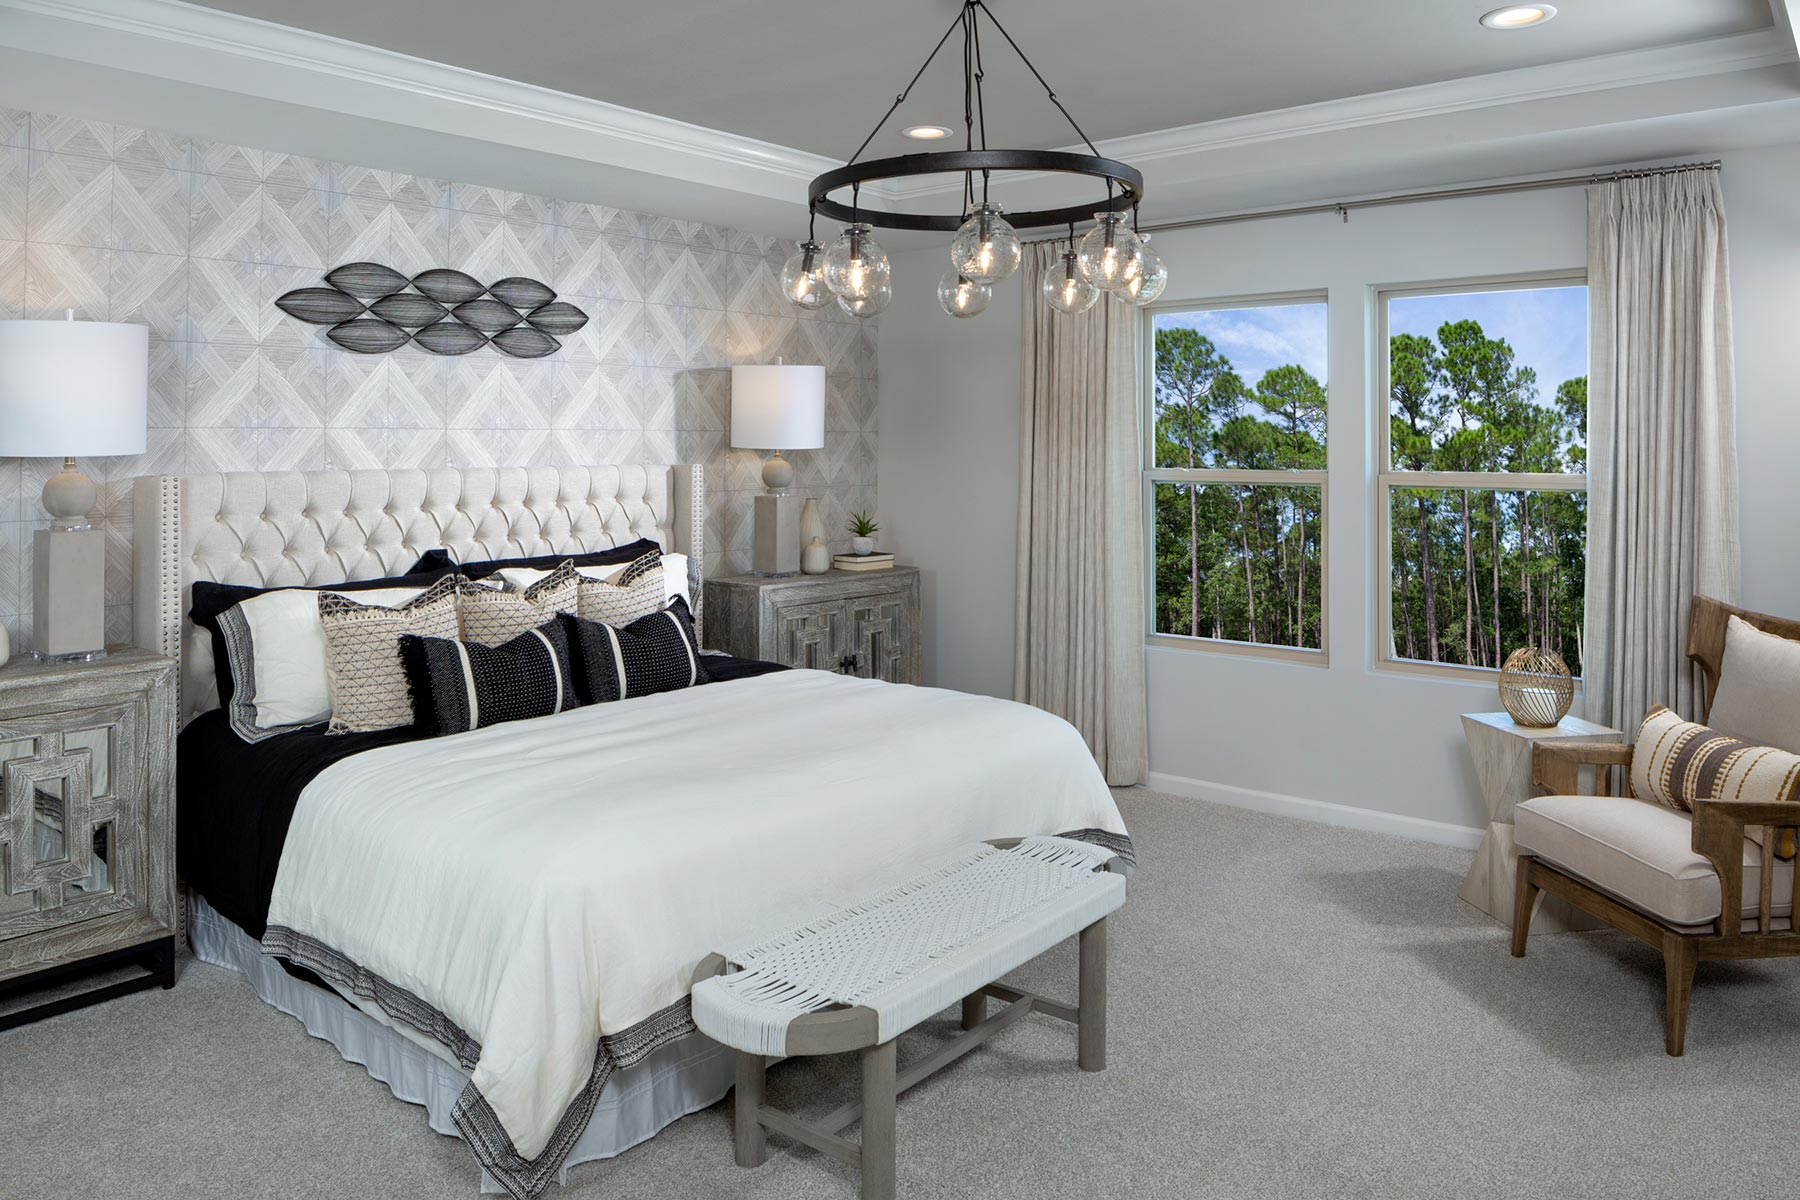 Braeburn Bedroom in Indian Trail North Carolina by Mattamy Homes